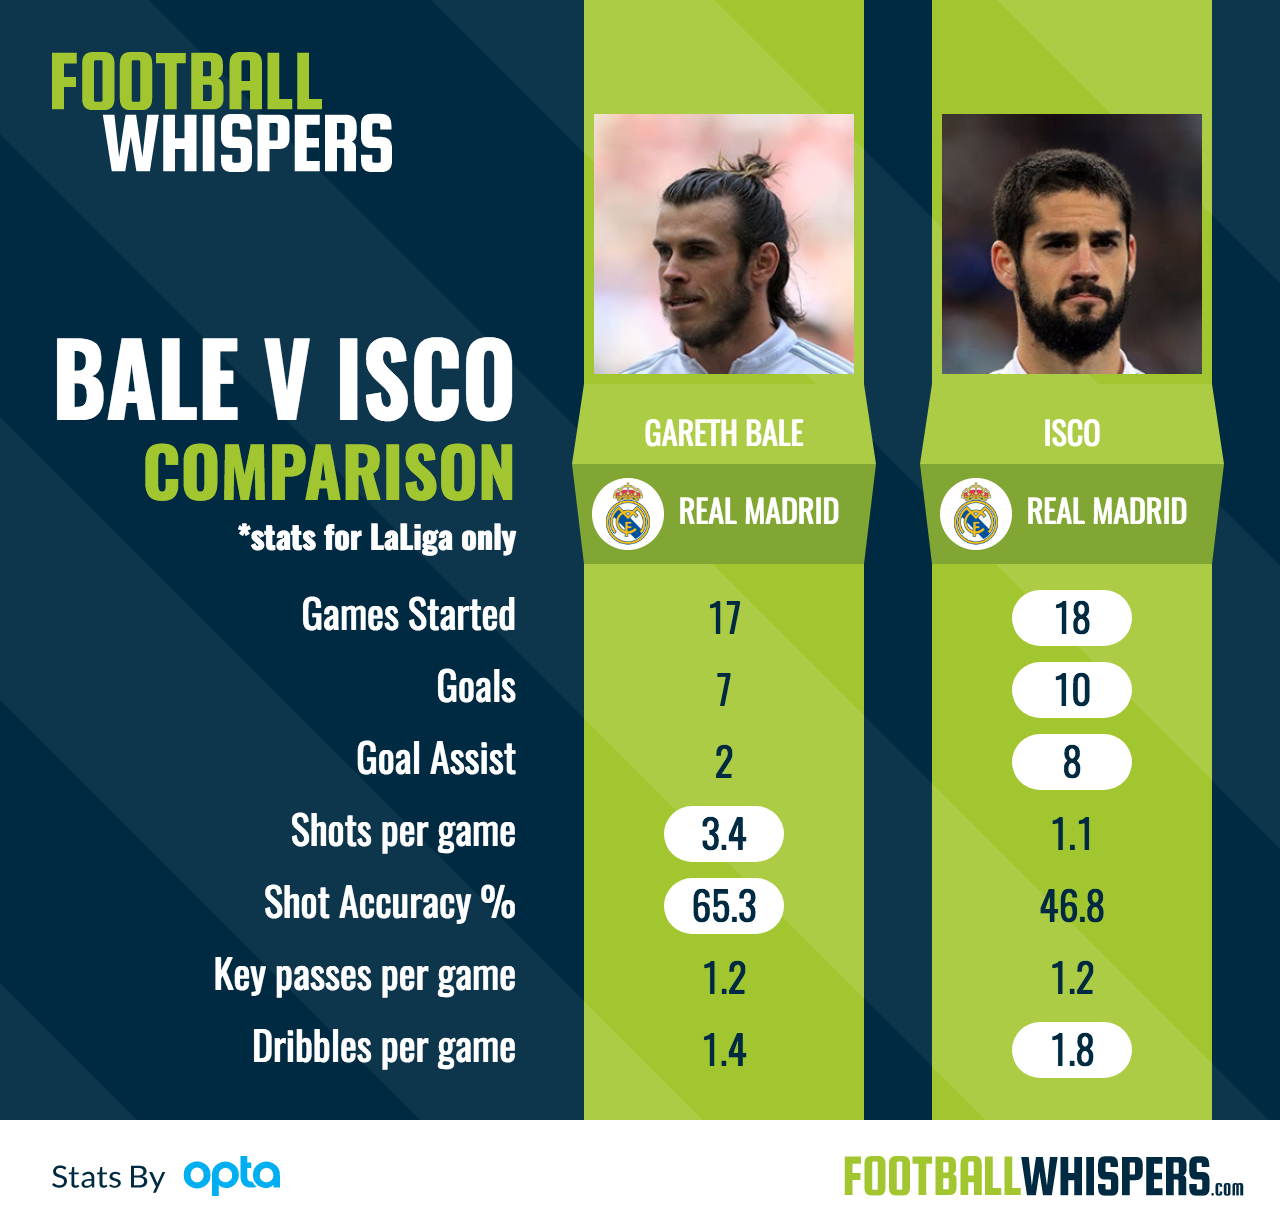 Real Madrid's Gareth Bale compared statistically to Isco